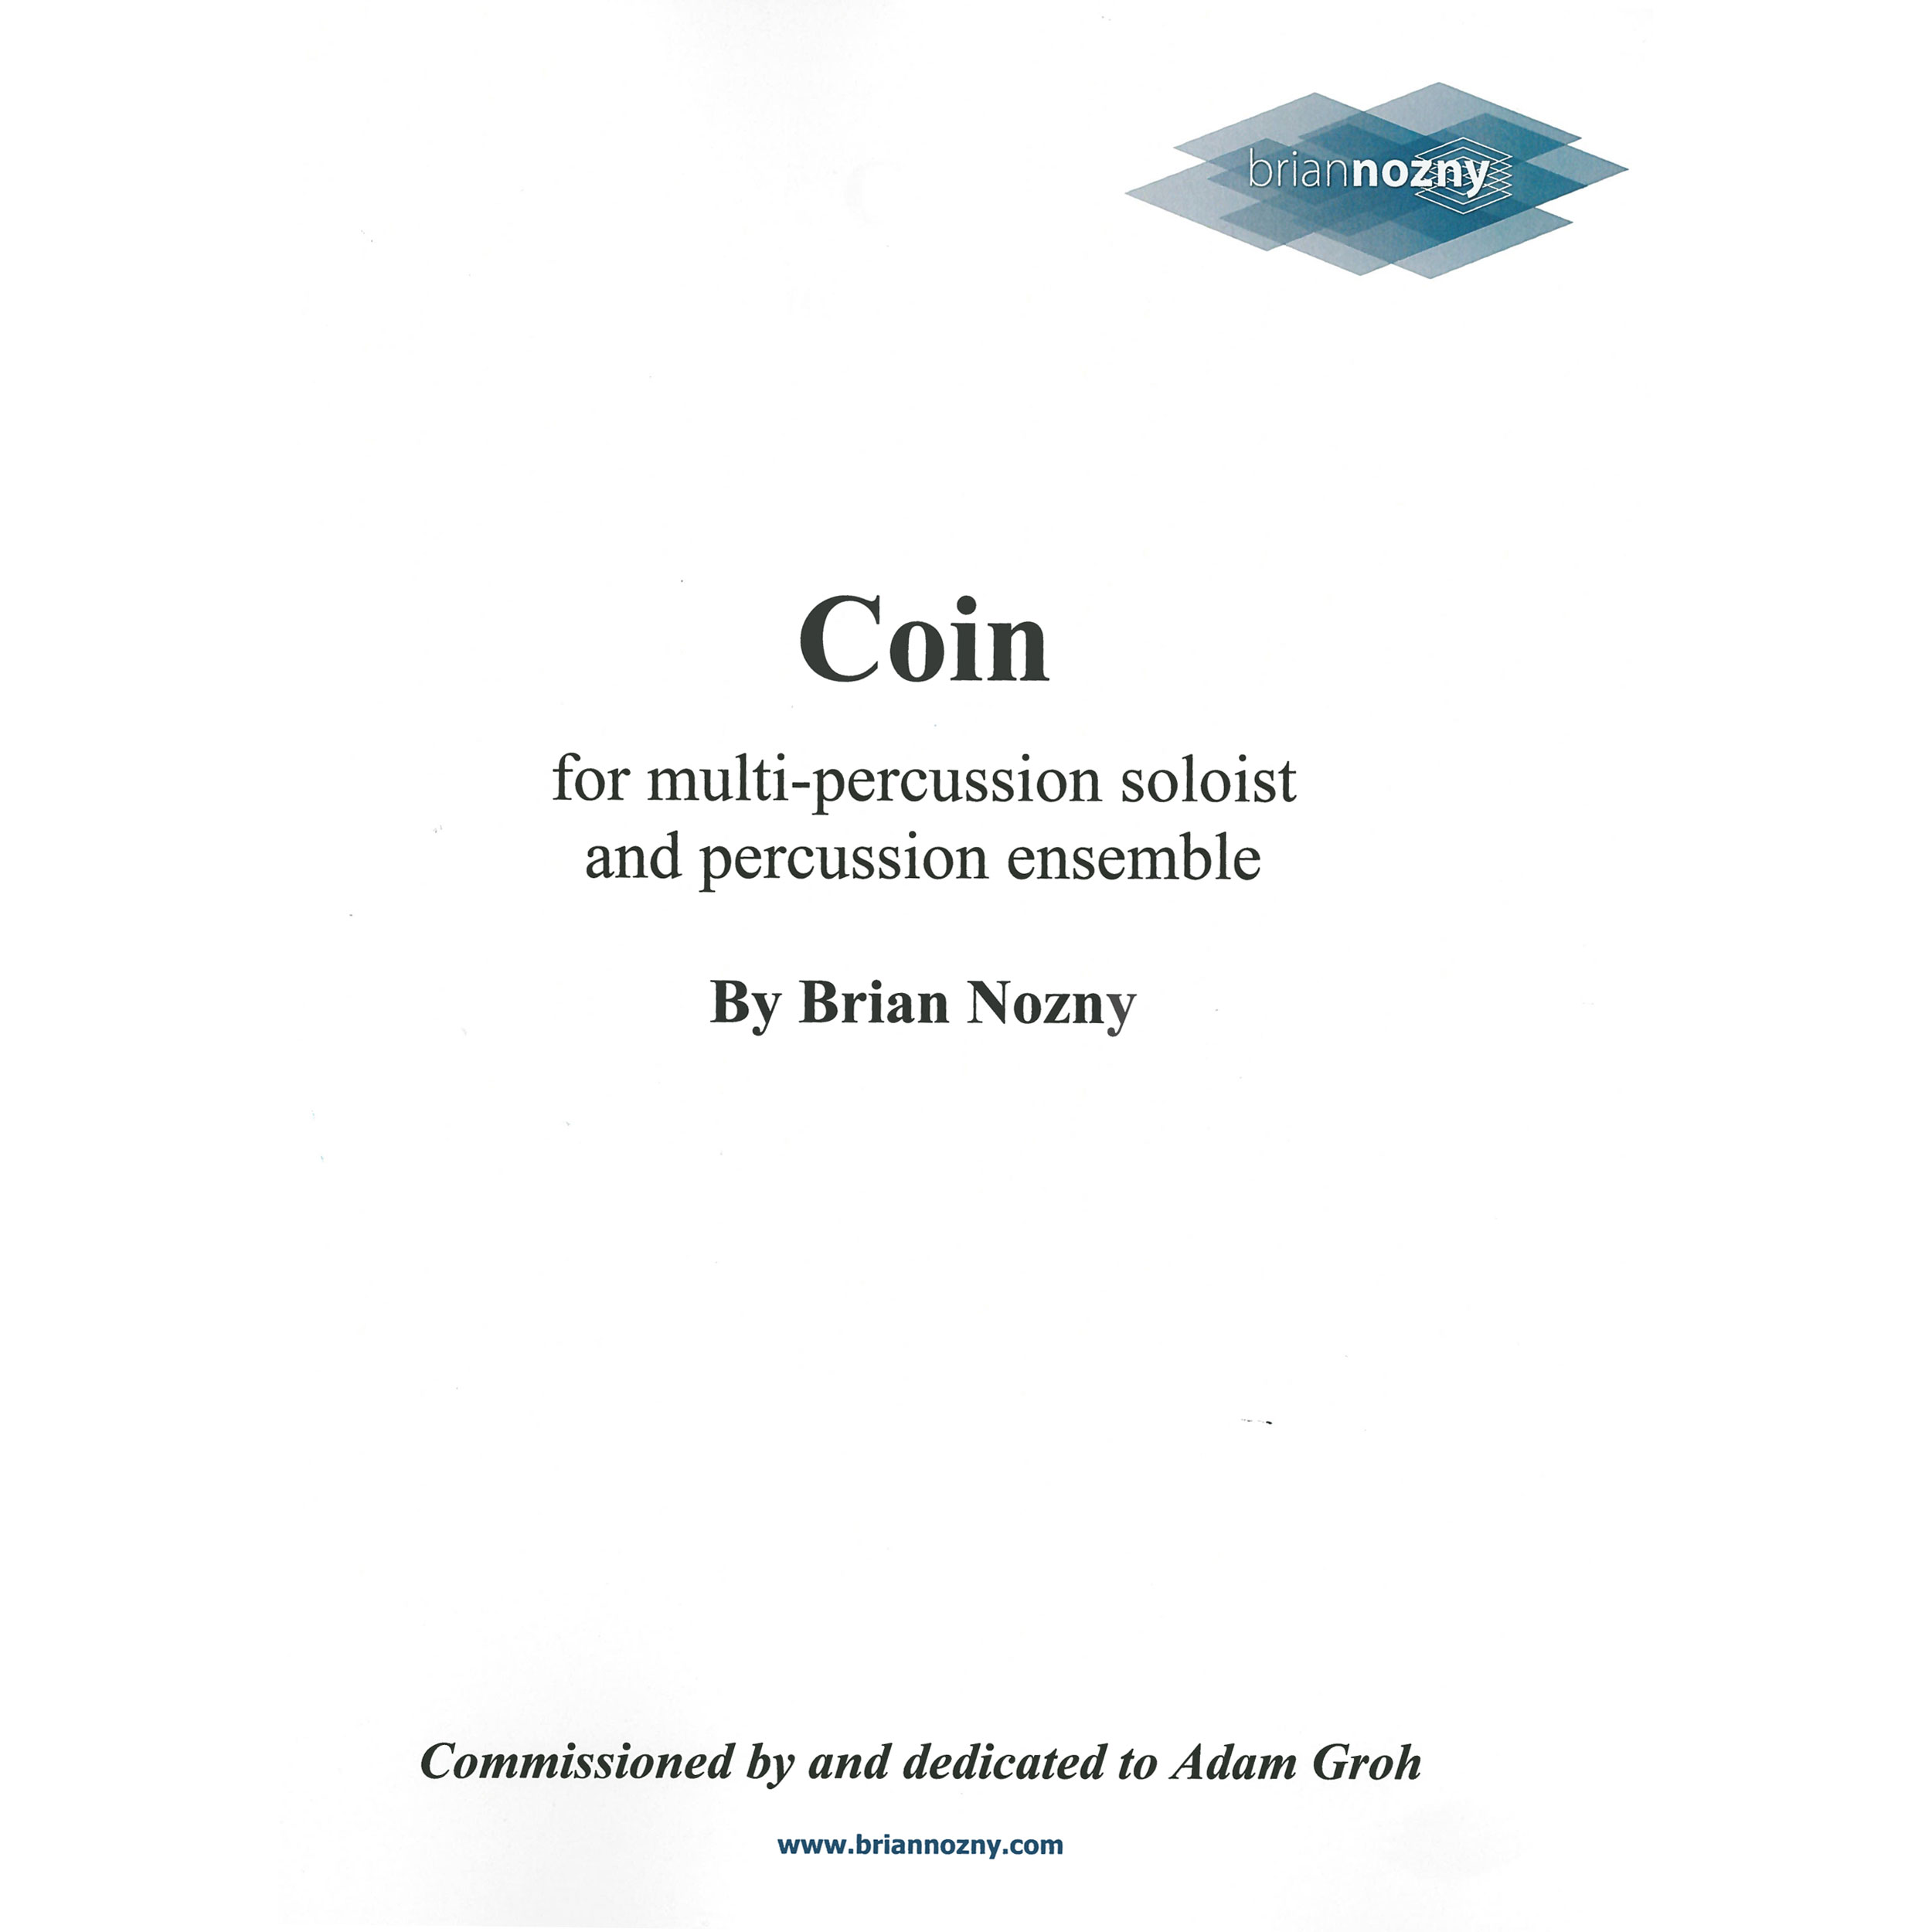 Coin by Brian Nozny